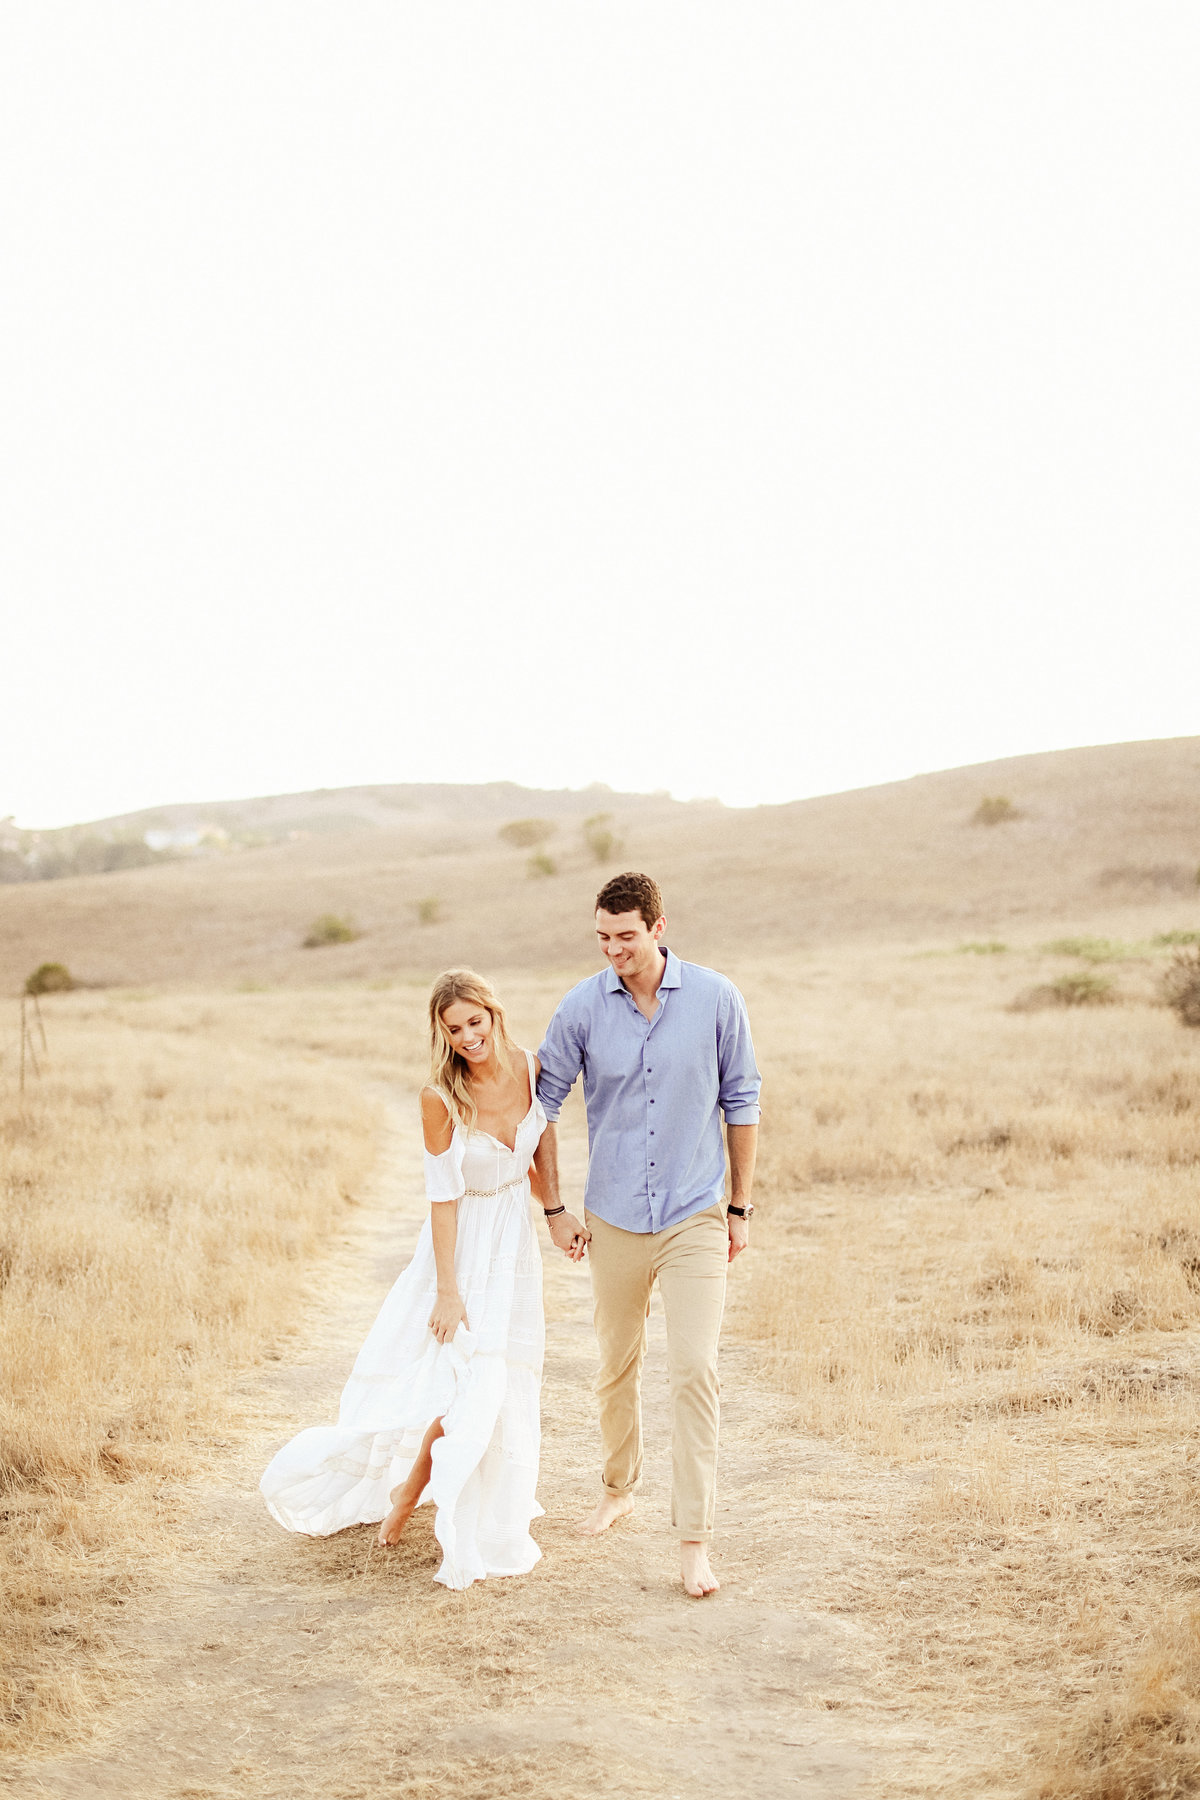 Rustic_Engagement_Session_023